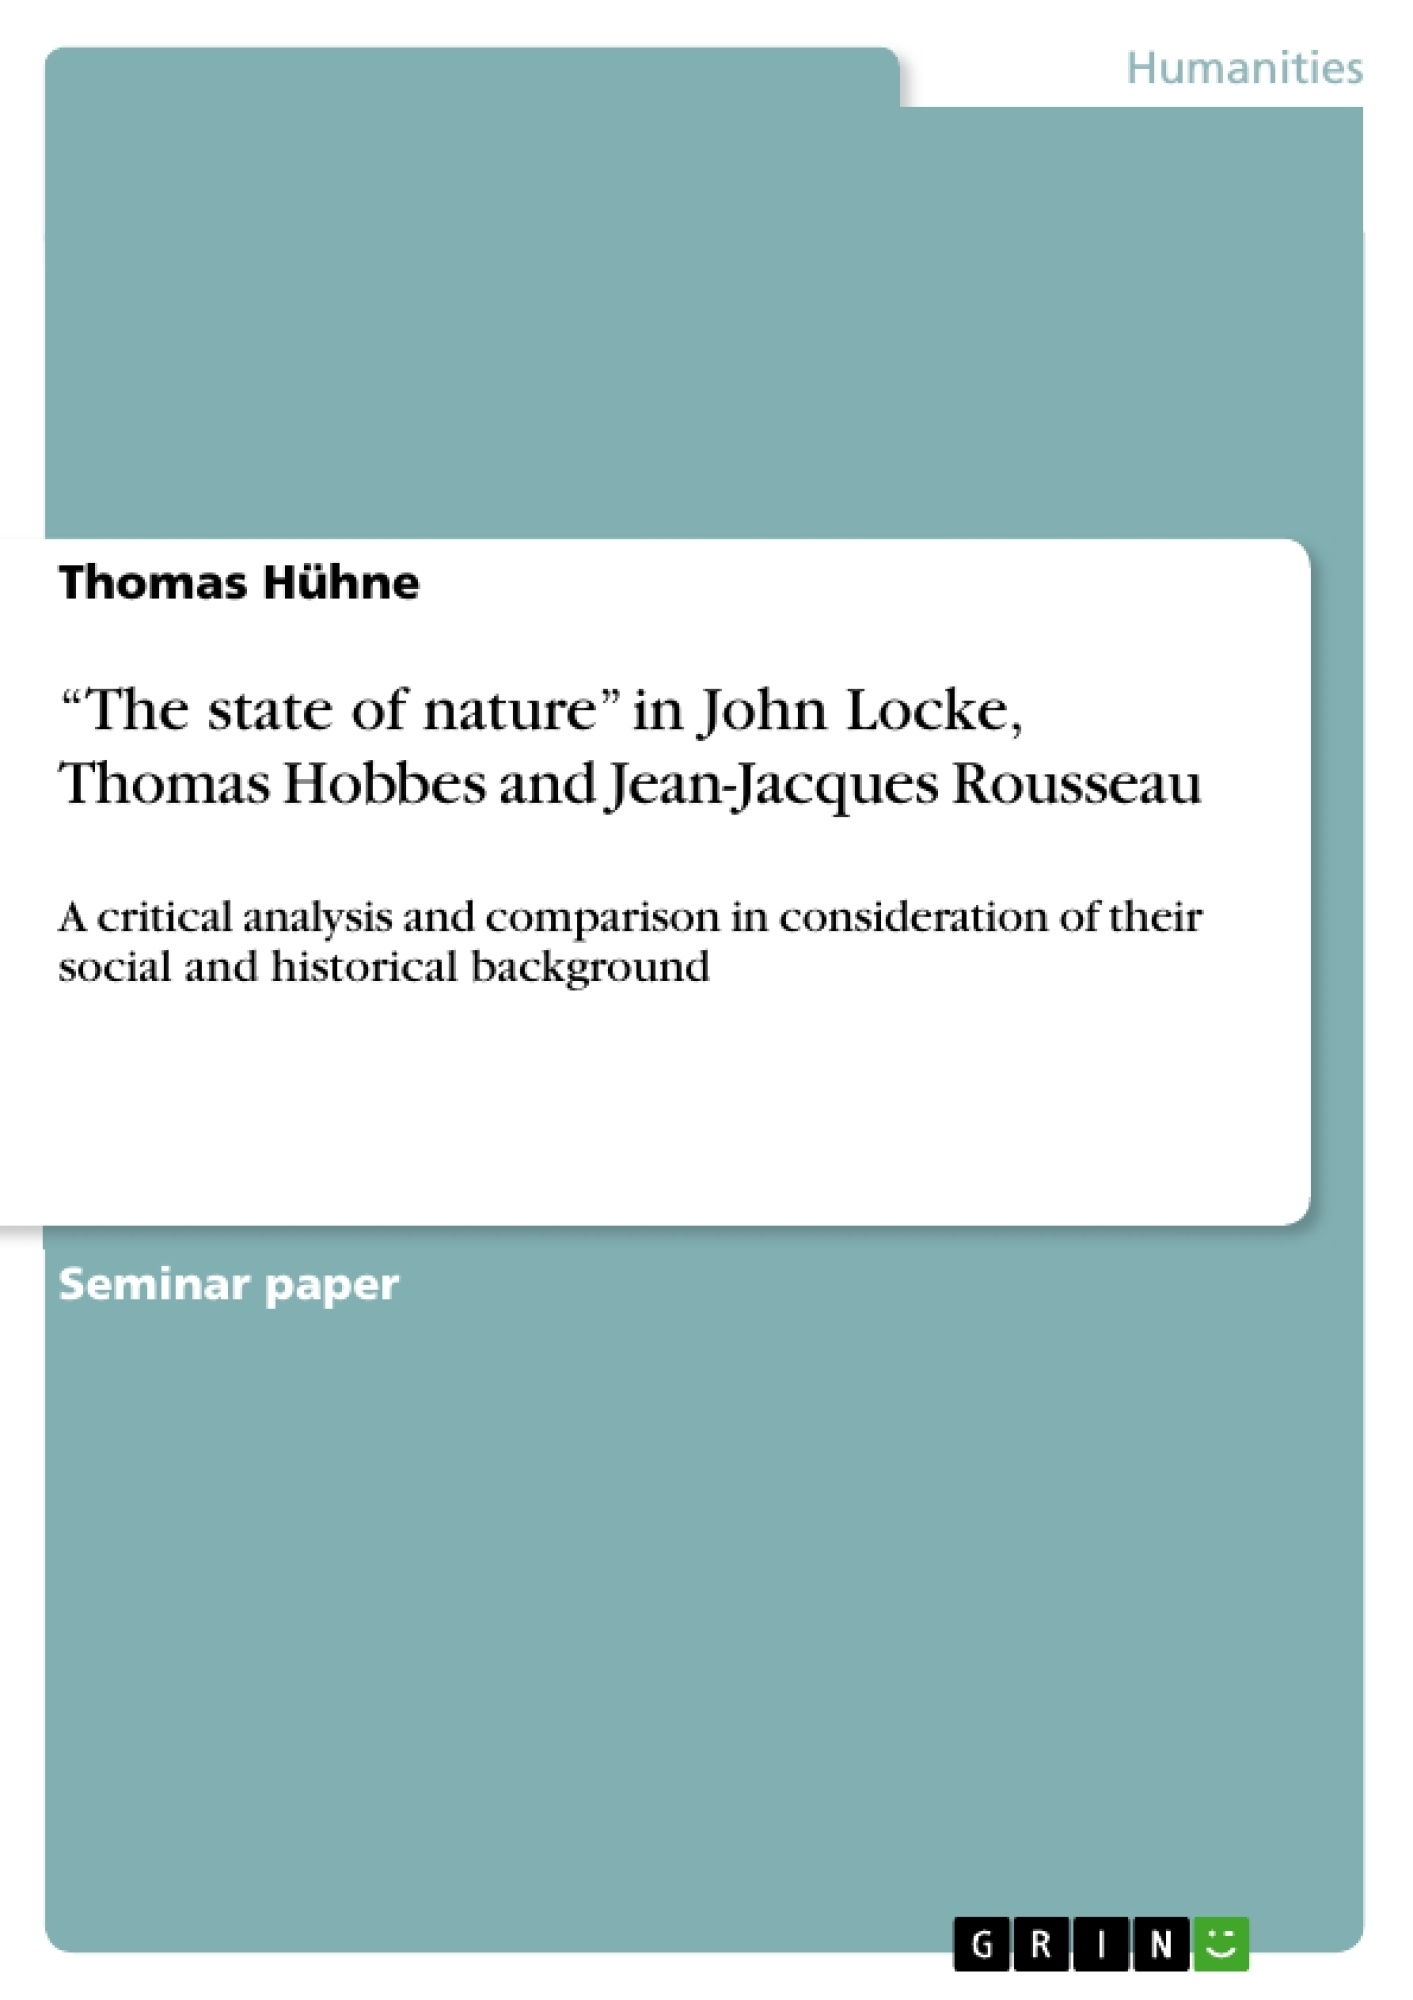 the state of nature rdquo in john locke thomas hobbes and ldquothe state of naturerdquo in john locke thomas hobbes and publish your master s thesis bachelor s thesis essay or term paper